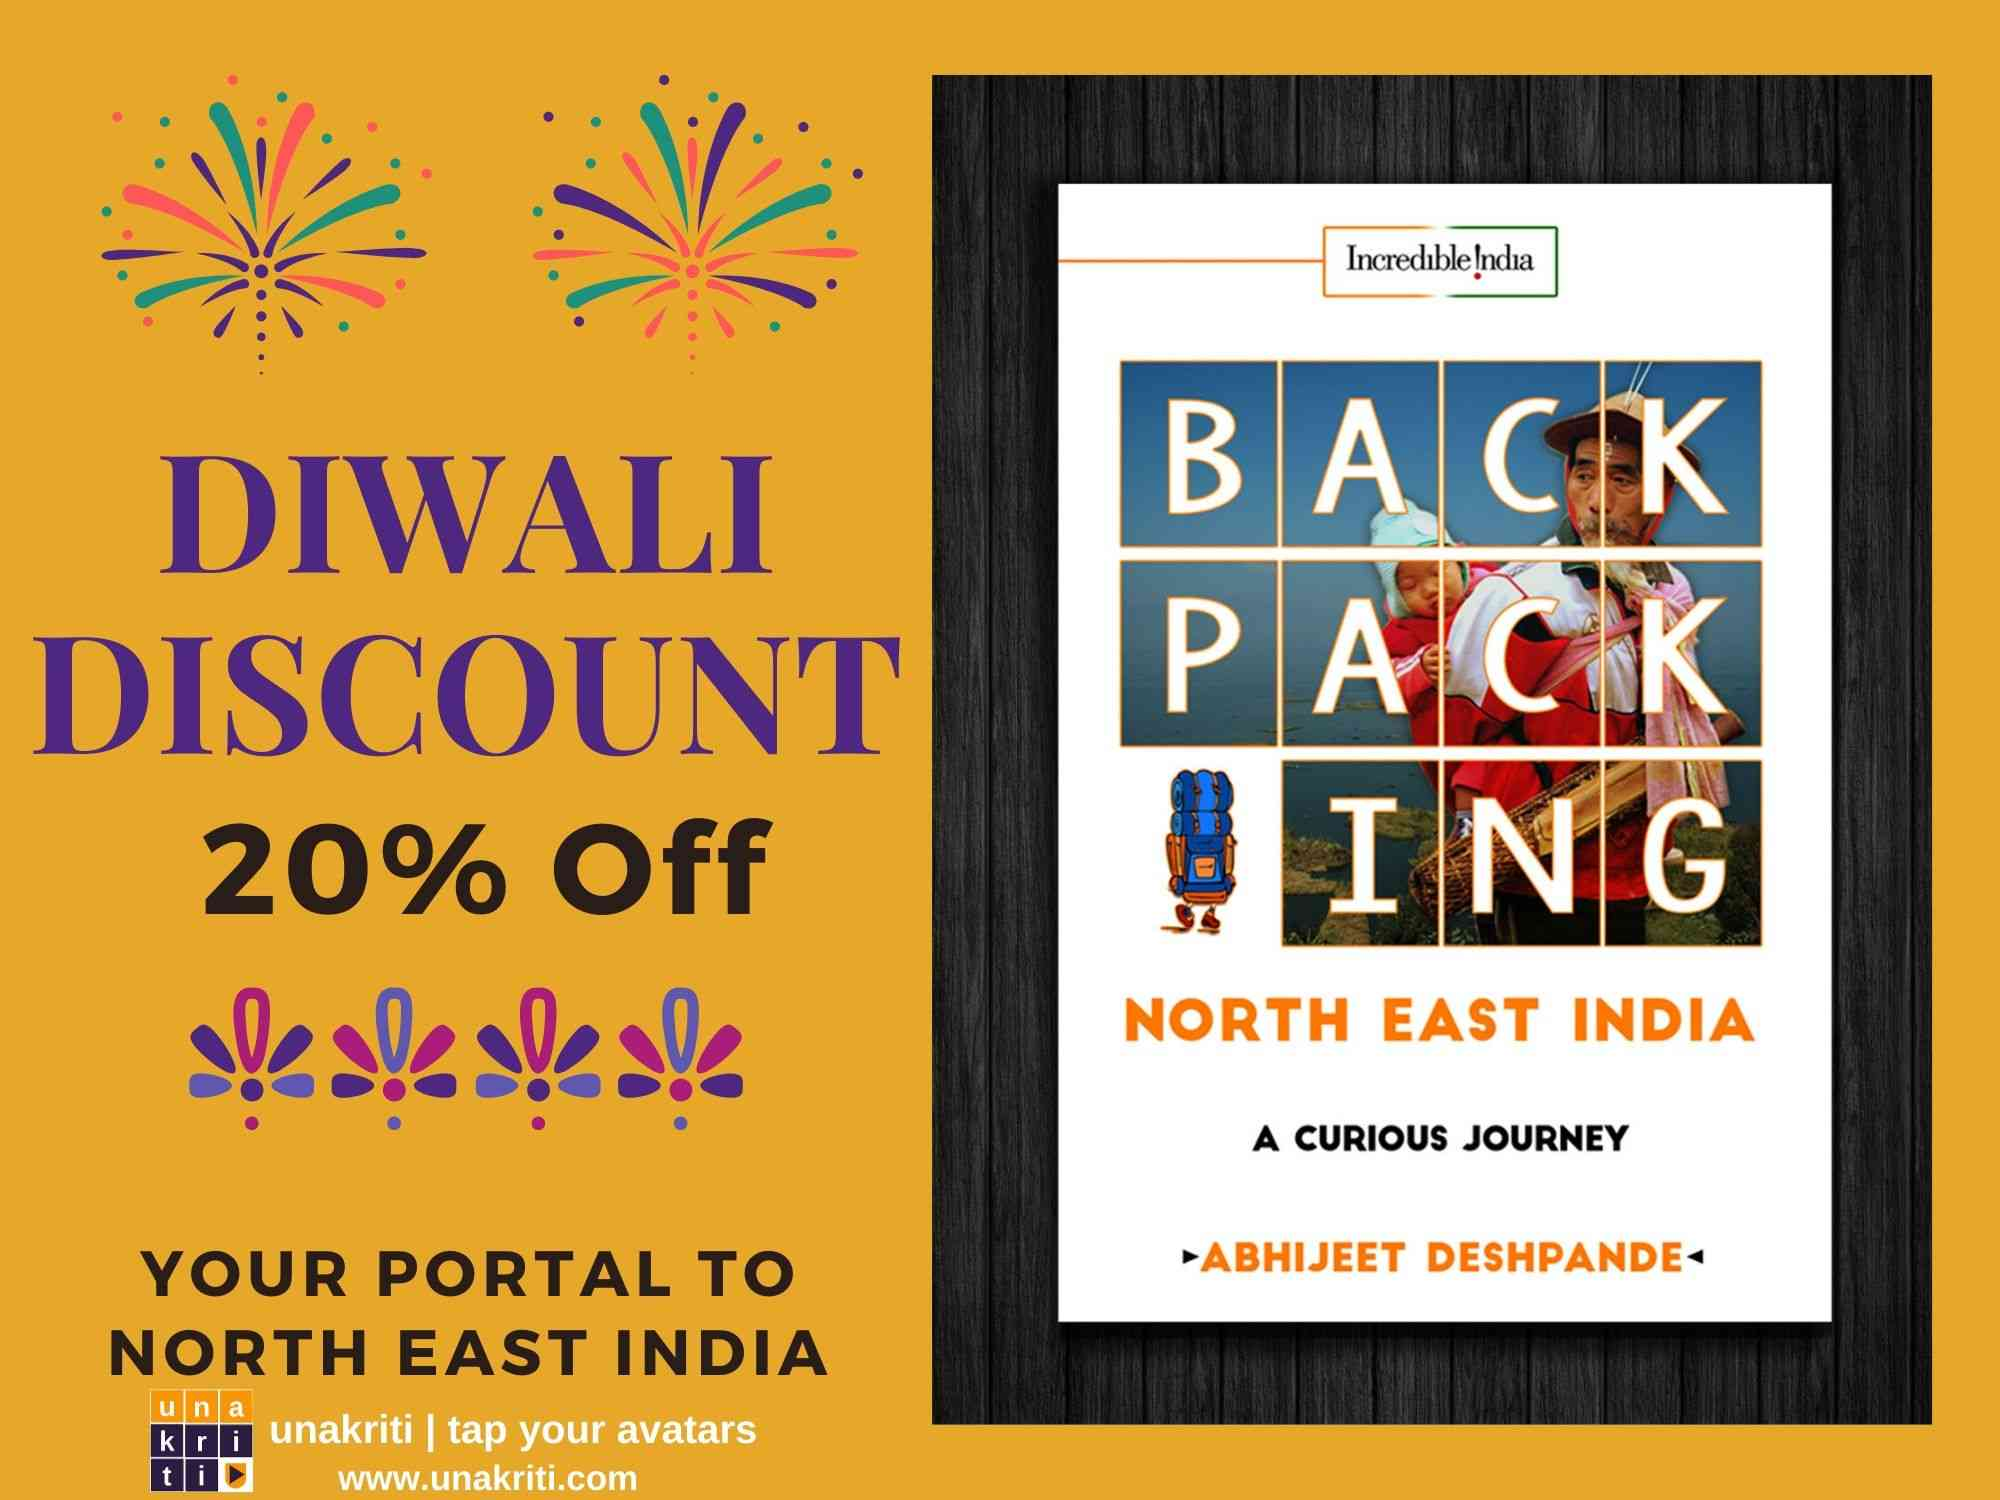 Is there a discount on the Northeast India travelogue?